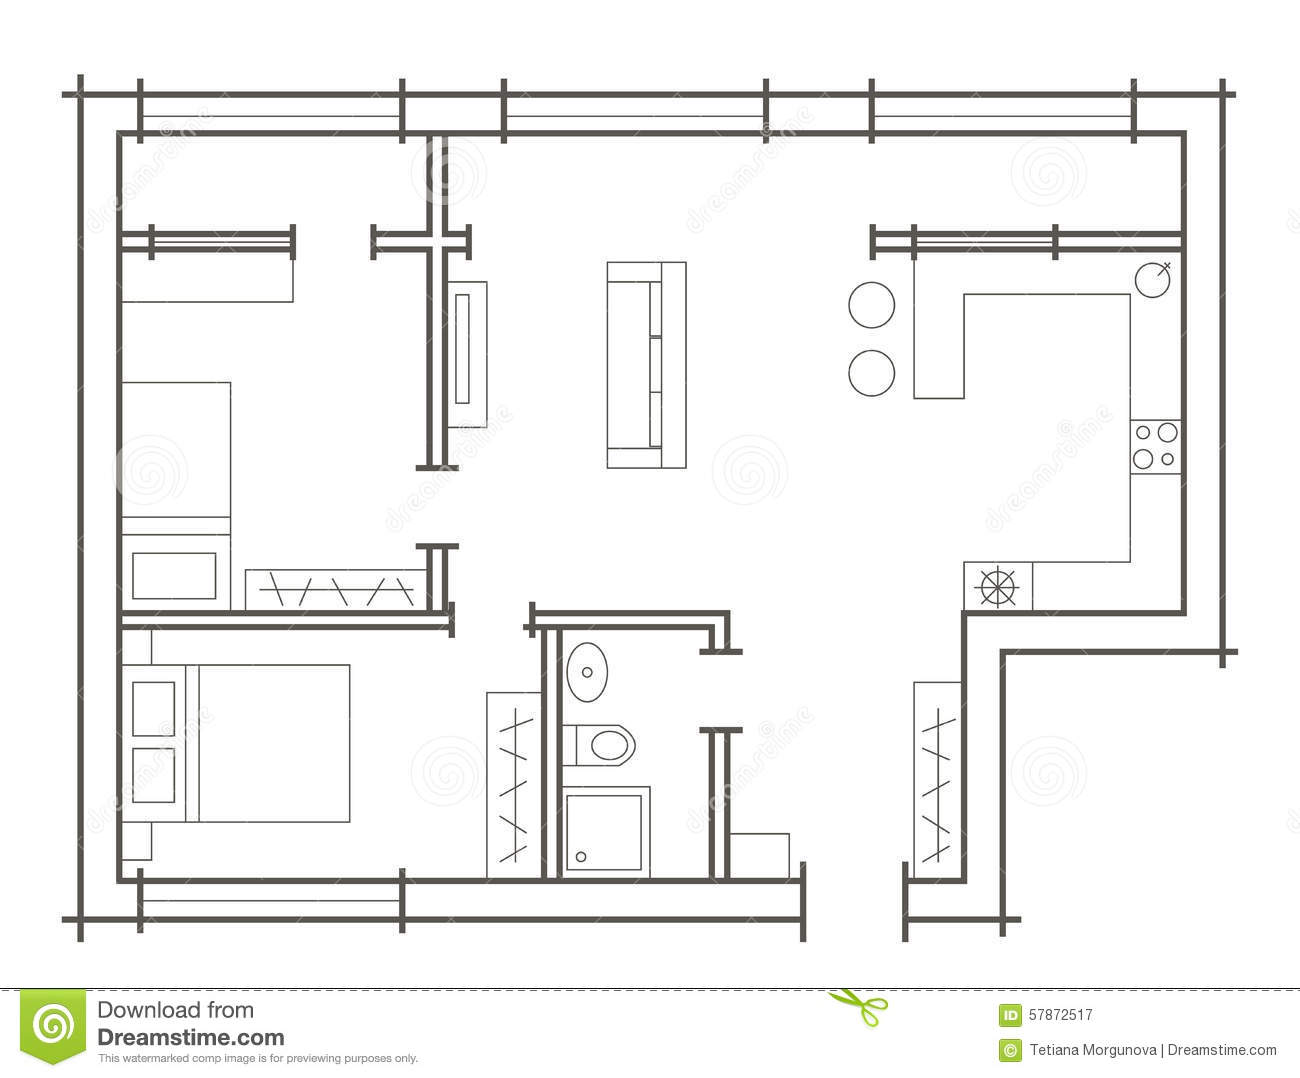 Plan sketch of two bedroom apartment stock vector image for Sketch plan for 2 bedroom house